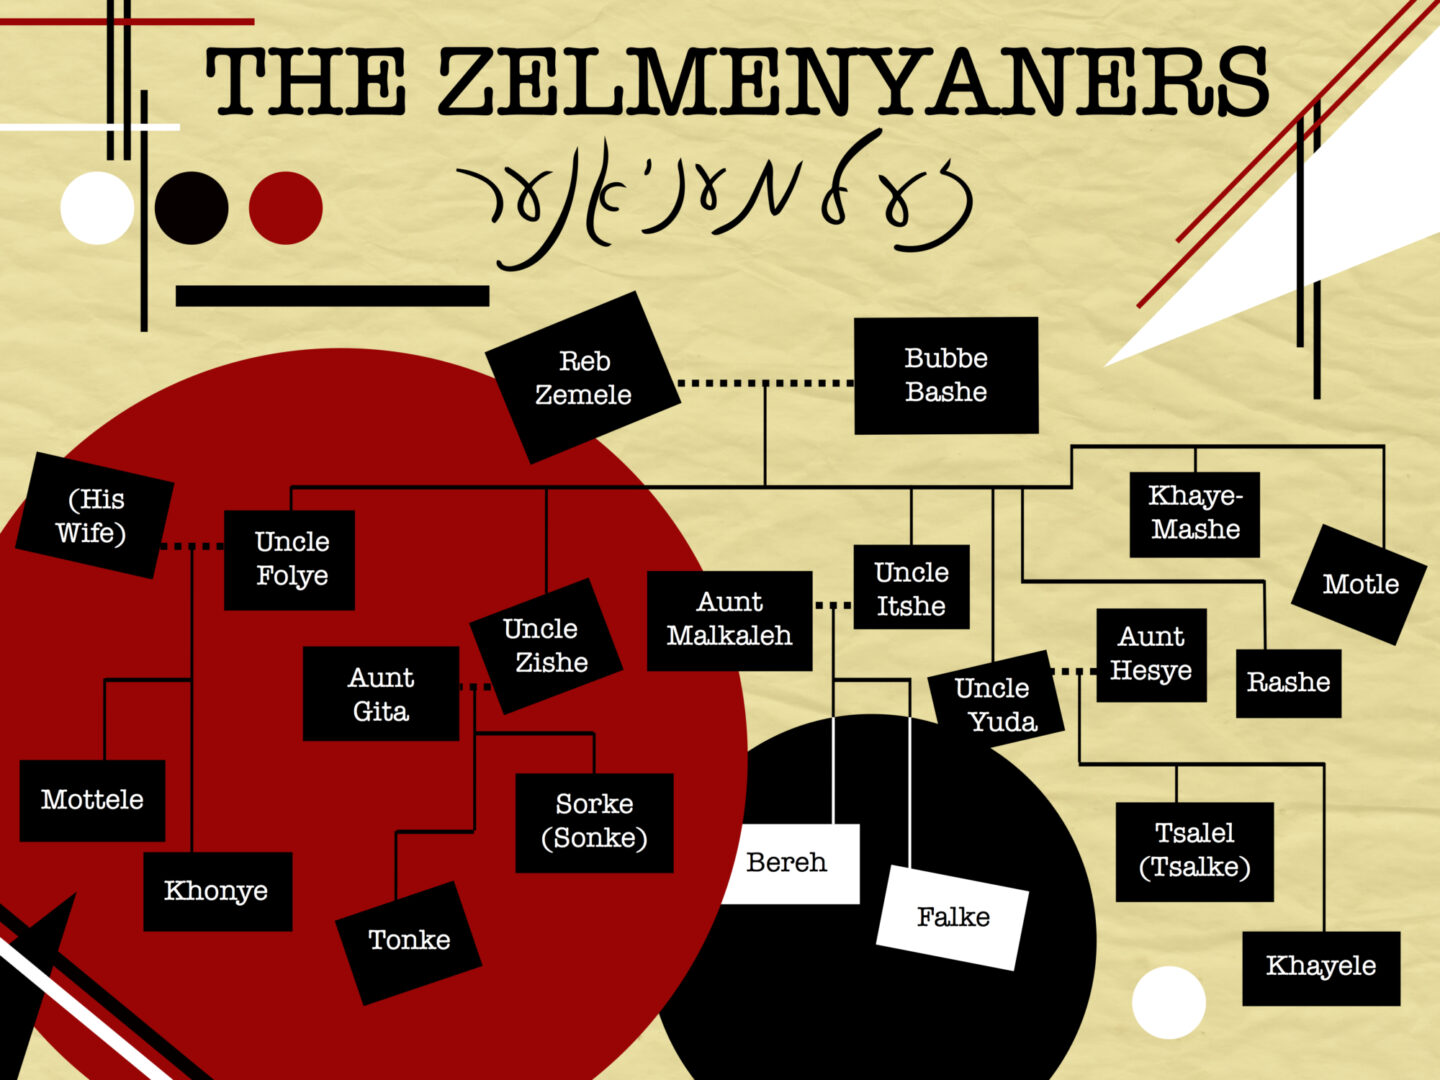 <p>The Zel­menyan­ers Fam­i­ly Tree. Illus­tra­tion by David&nbsp;Coons.</p>